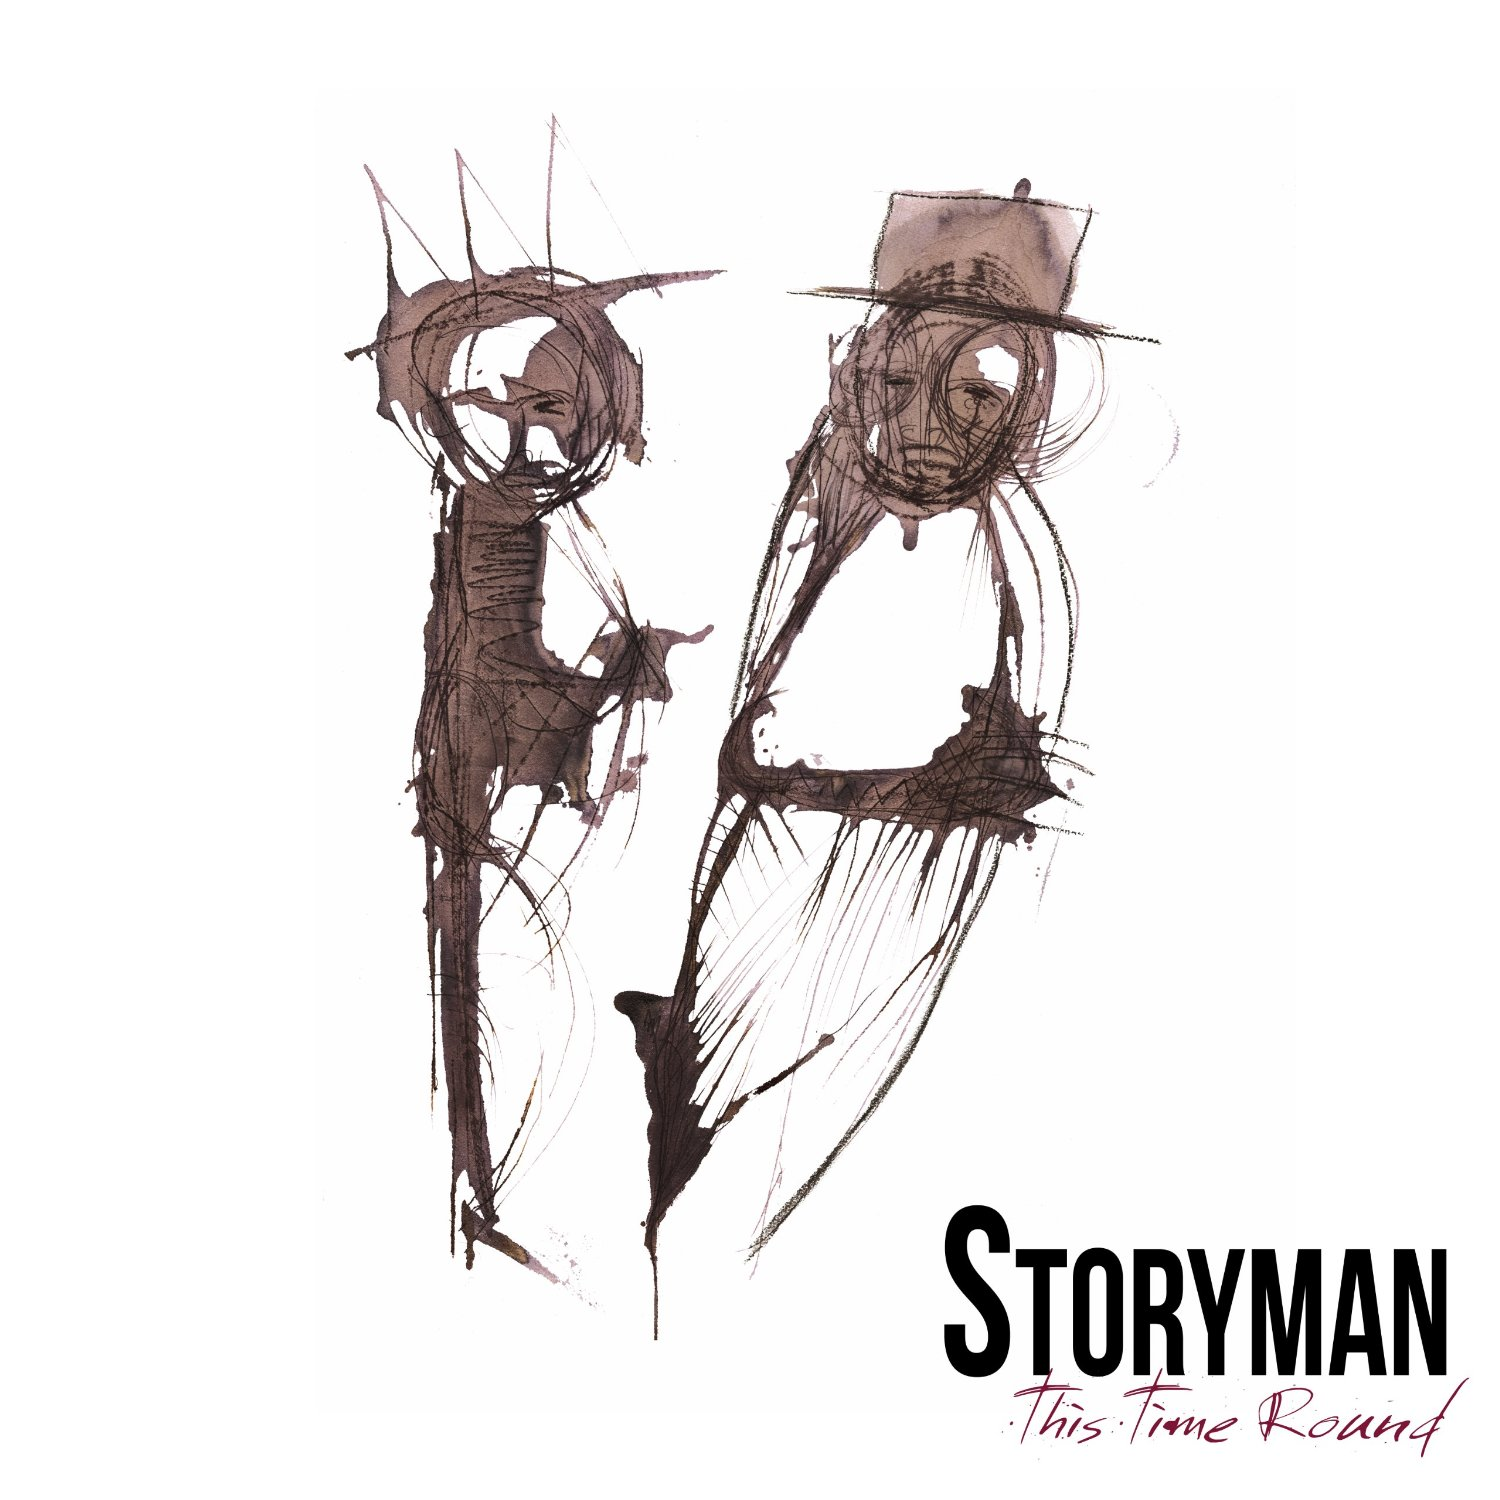 storyman - this time round 2013